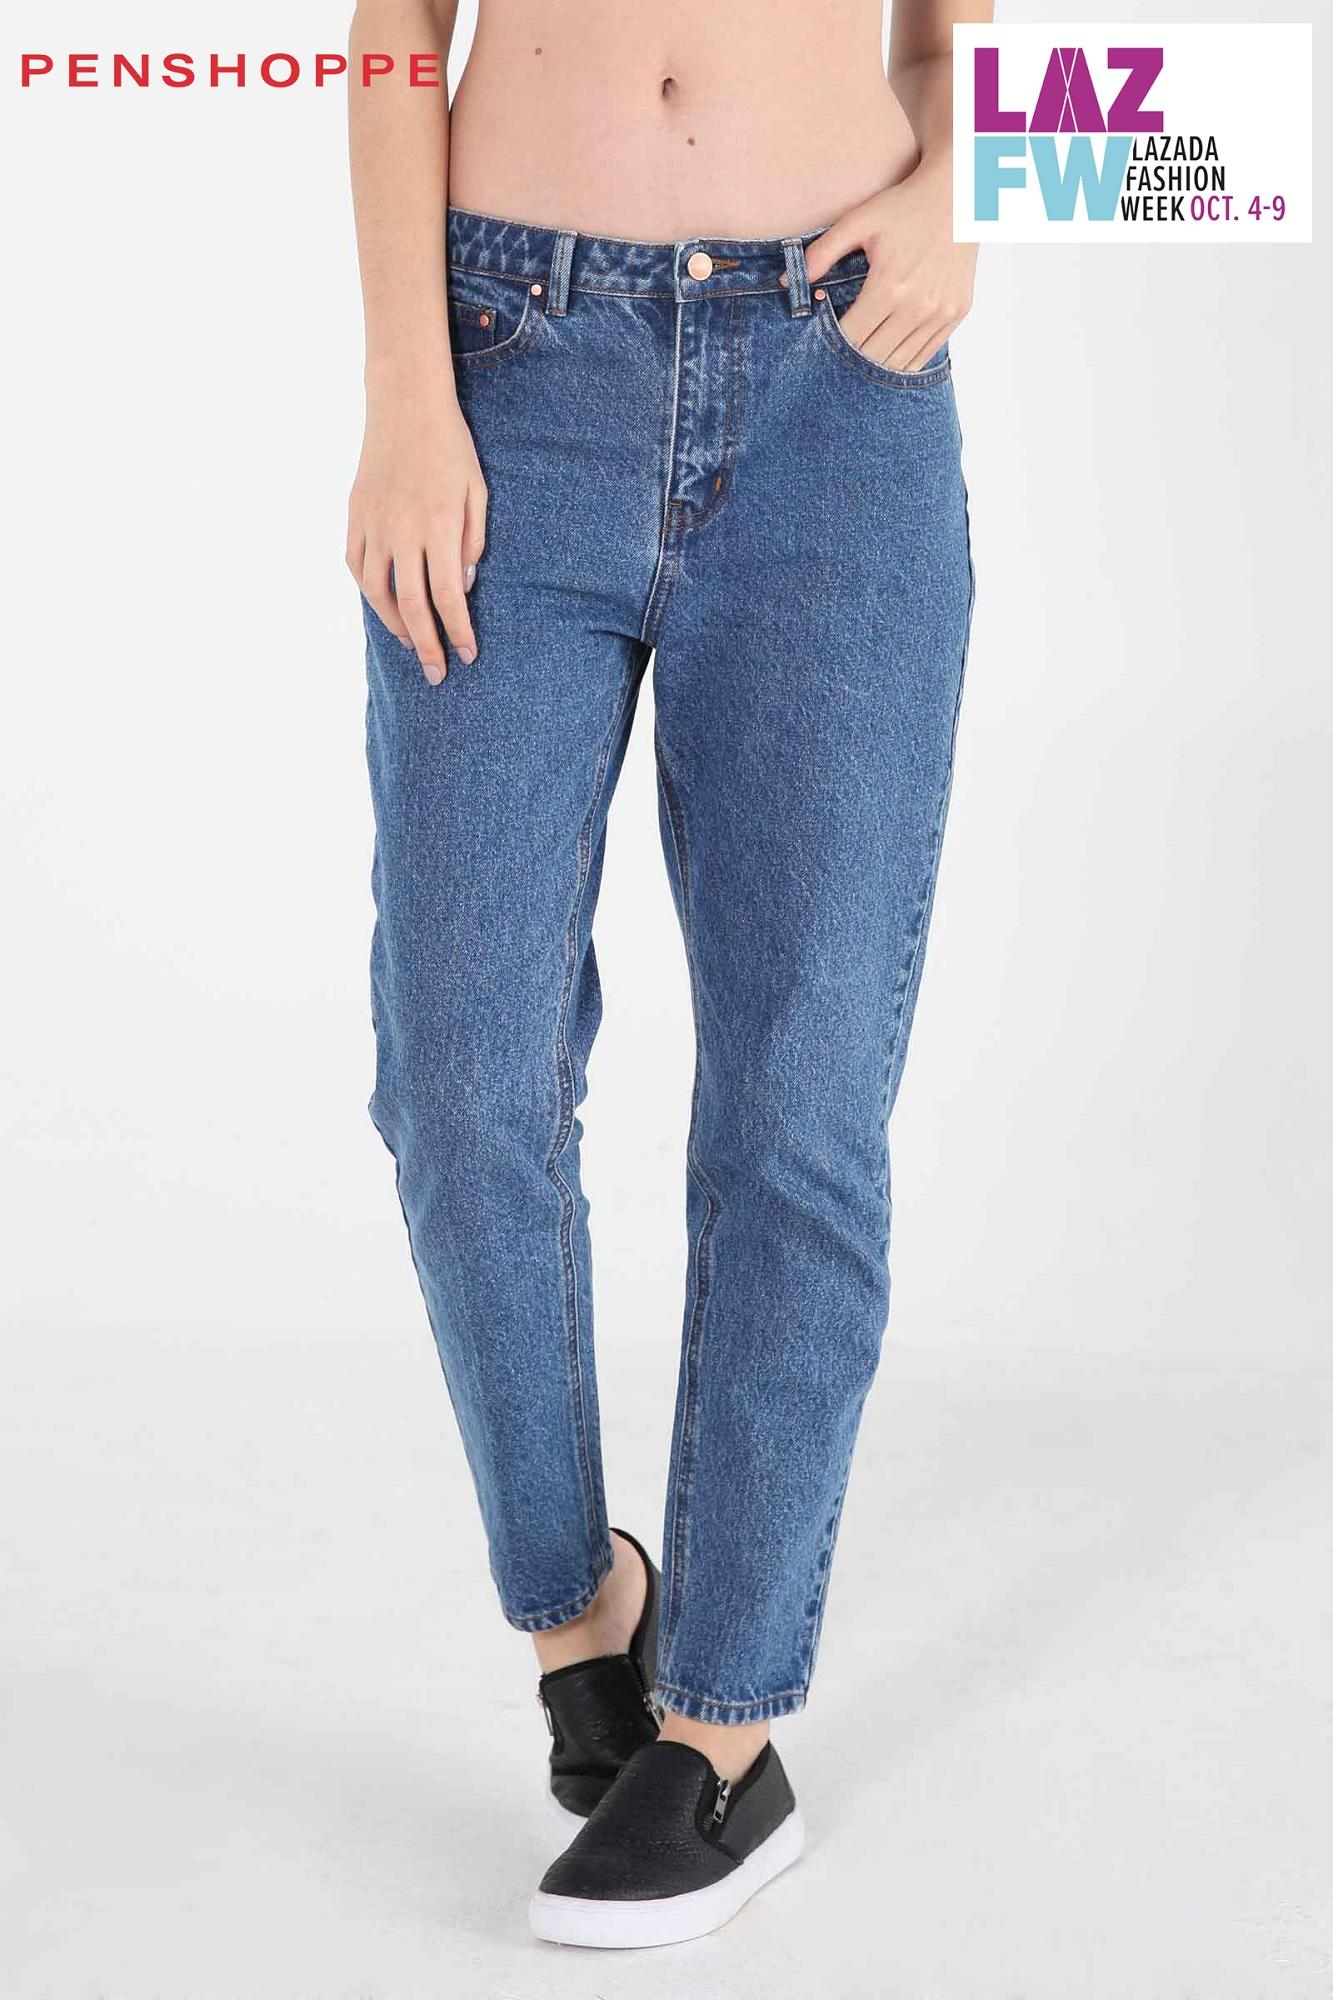 Penshoppe Jeans For Women Philippines Fashion Vintage Skin Rip Off Stretch Soft Slim In Stone Wash Blue